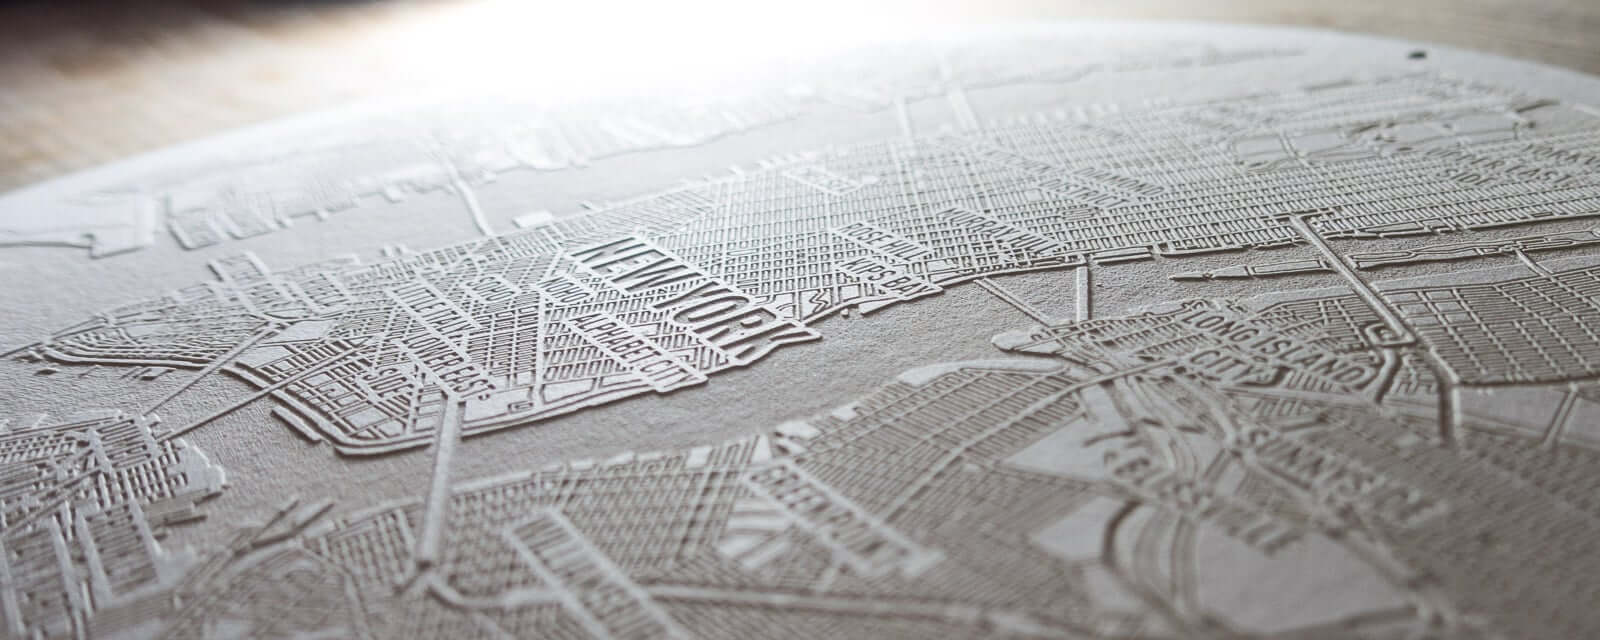 Papier Laser Gravur von Manhatten, New York City.